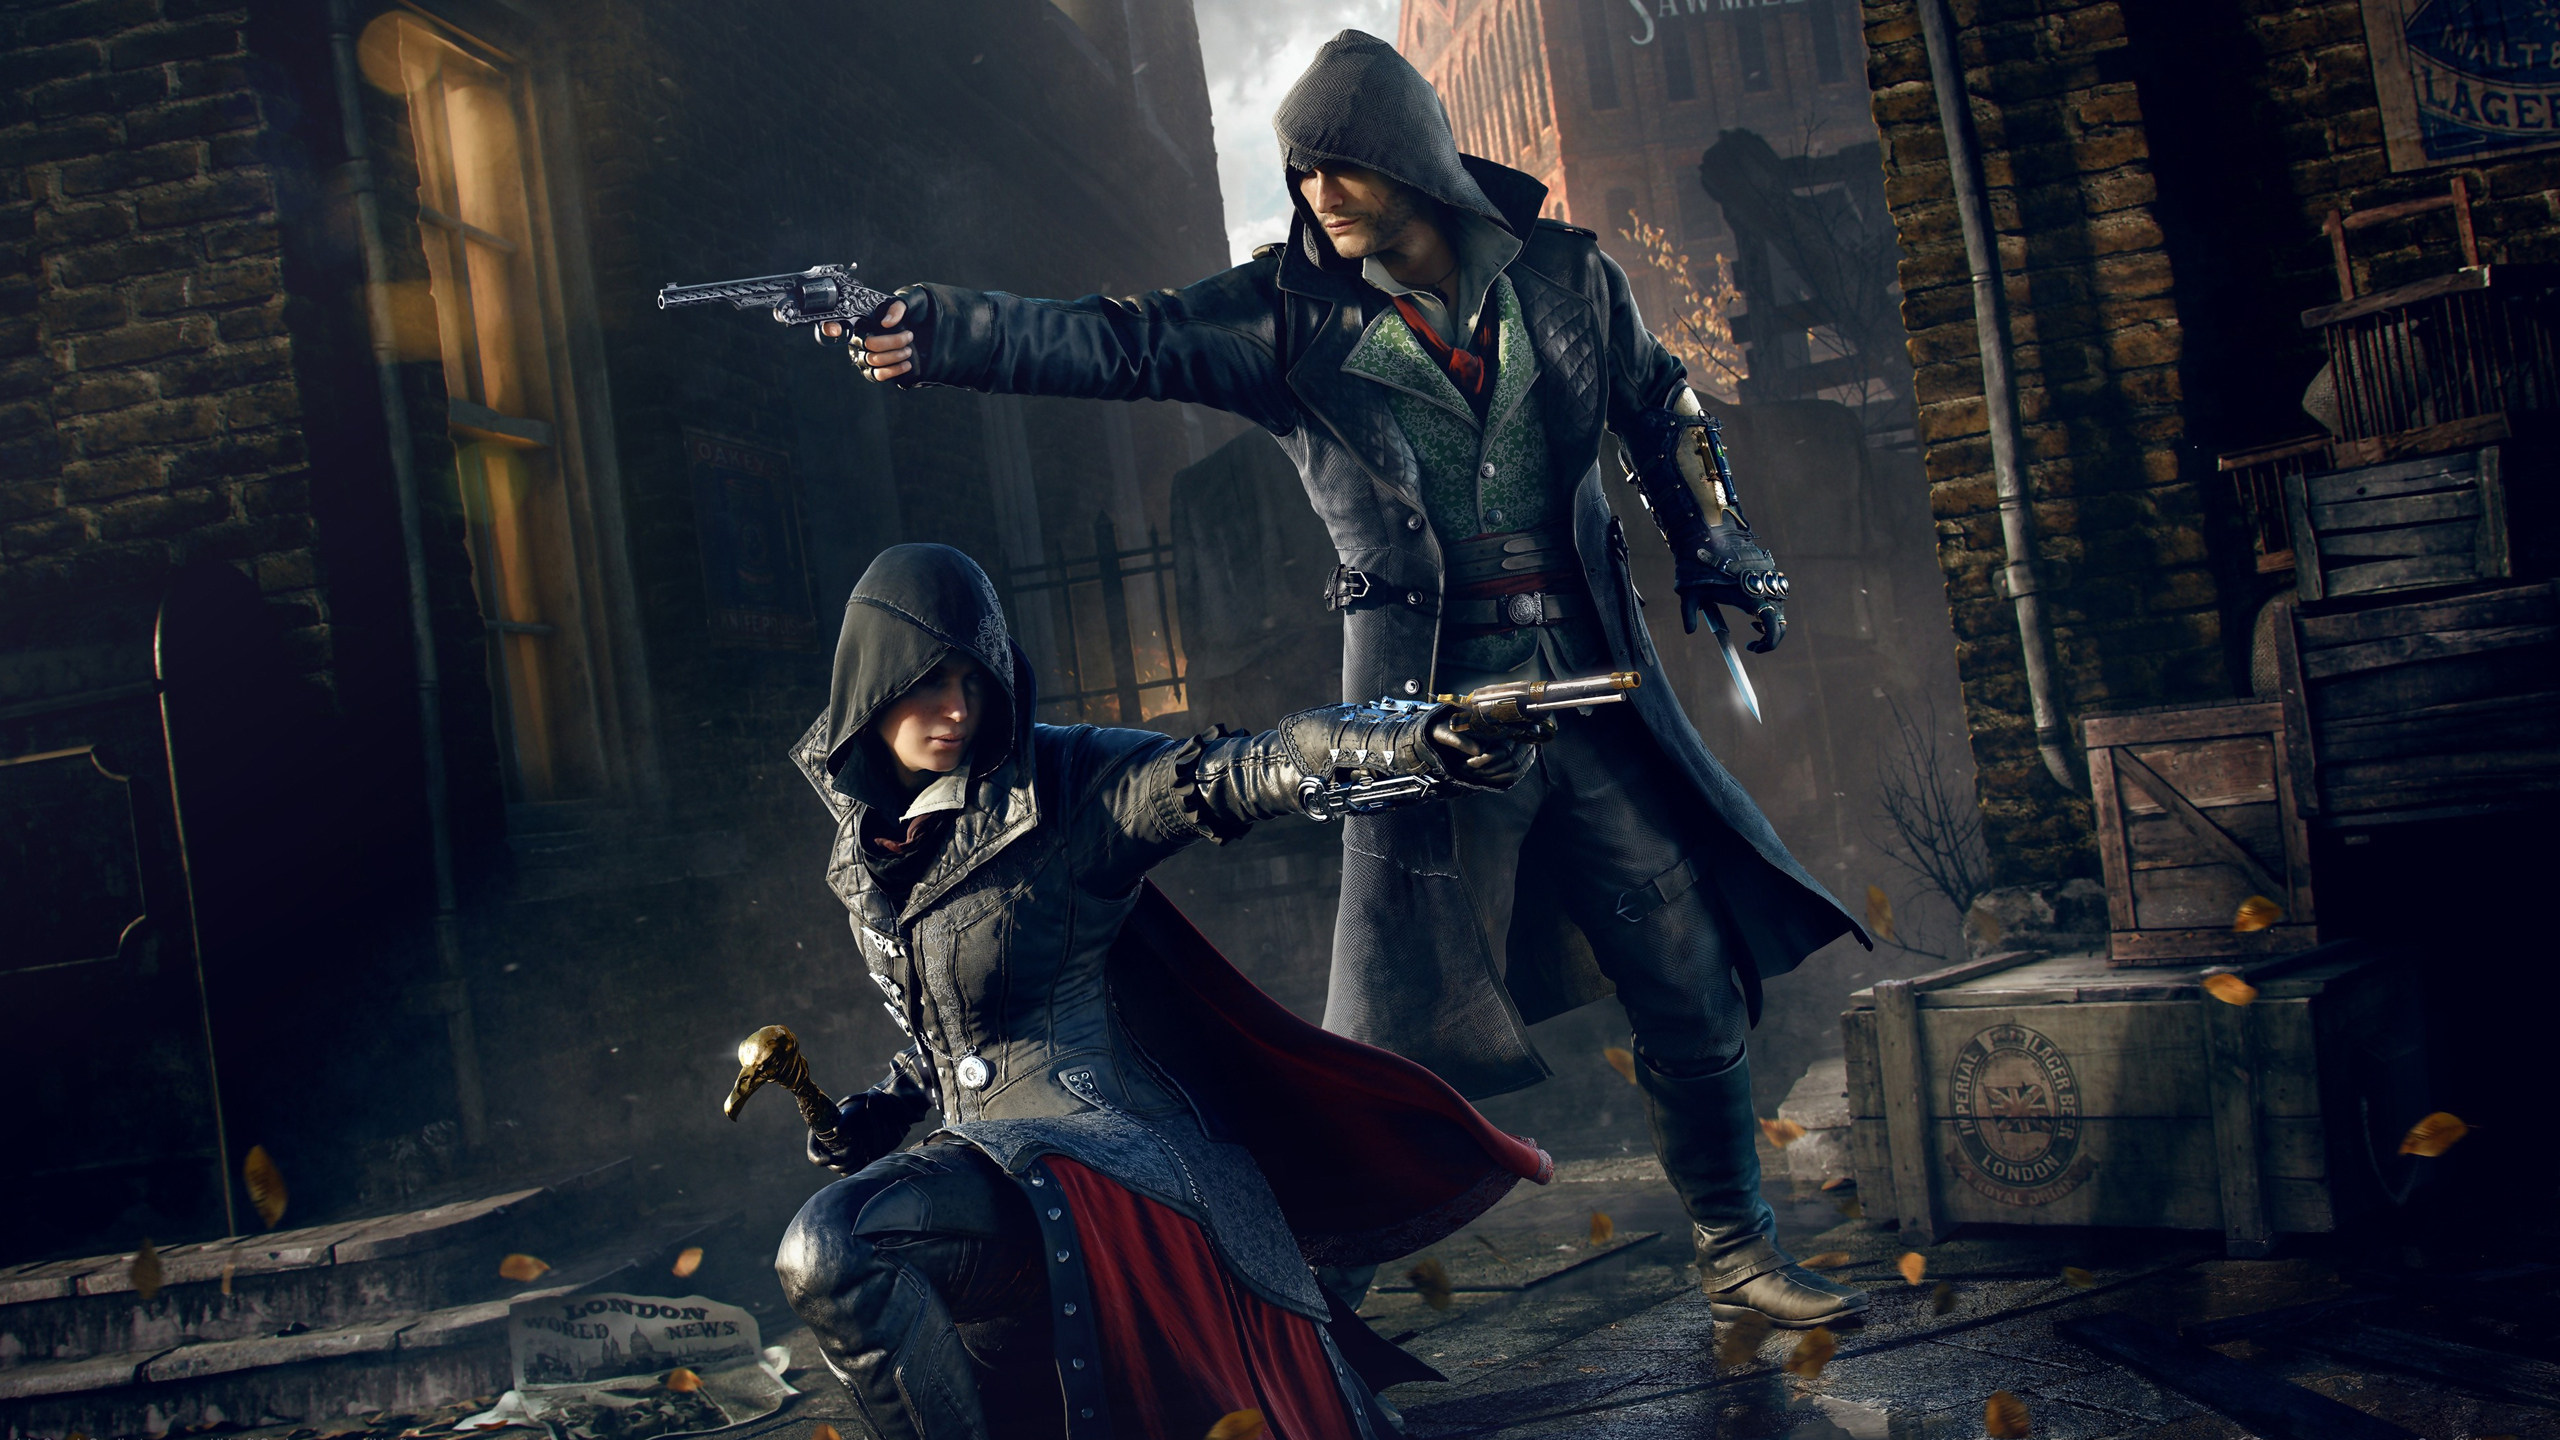 assassin's creed: syndicate hd wallpapers and background images